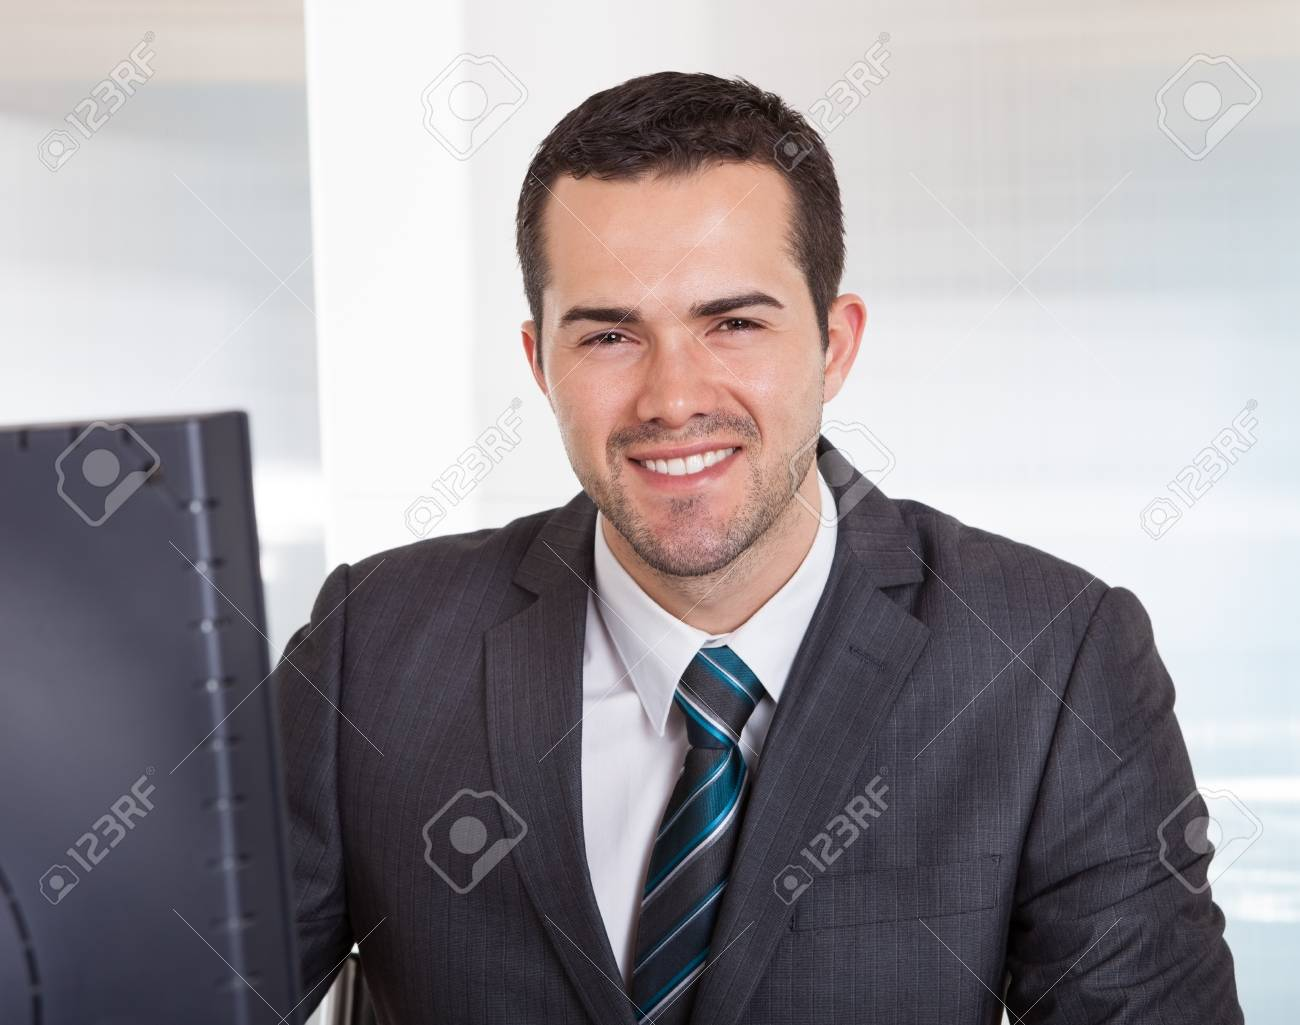 Successful businessman working at desk at the office Stock Photo - 14929729